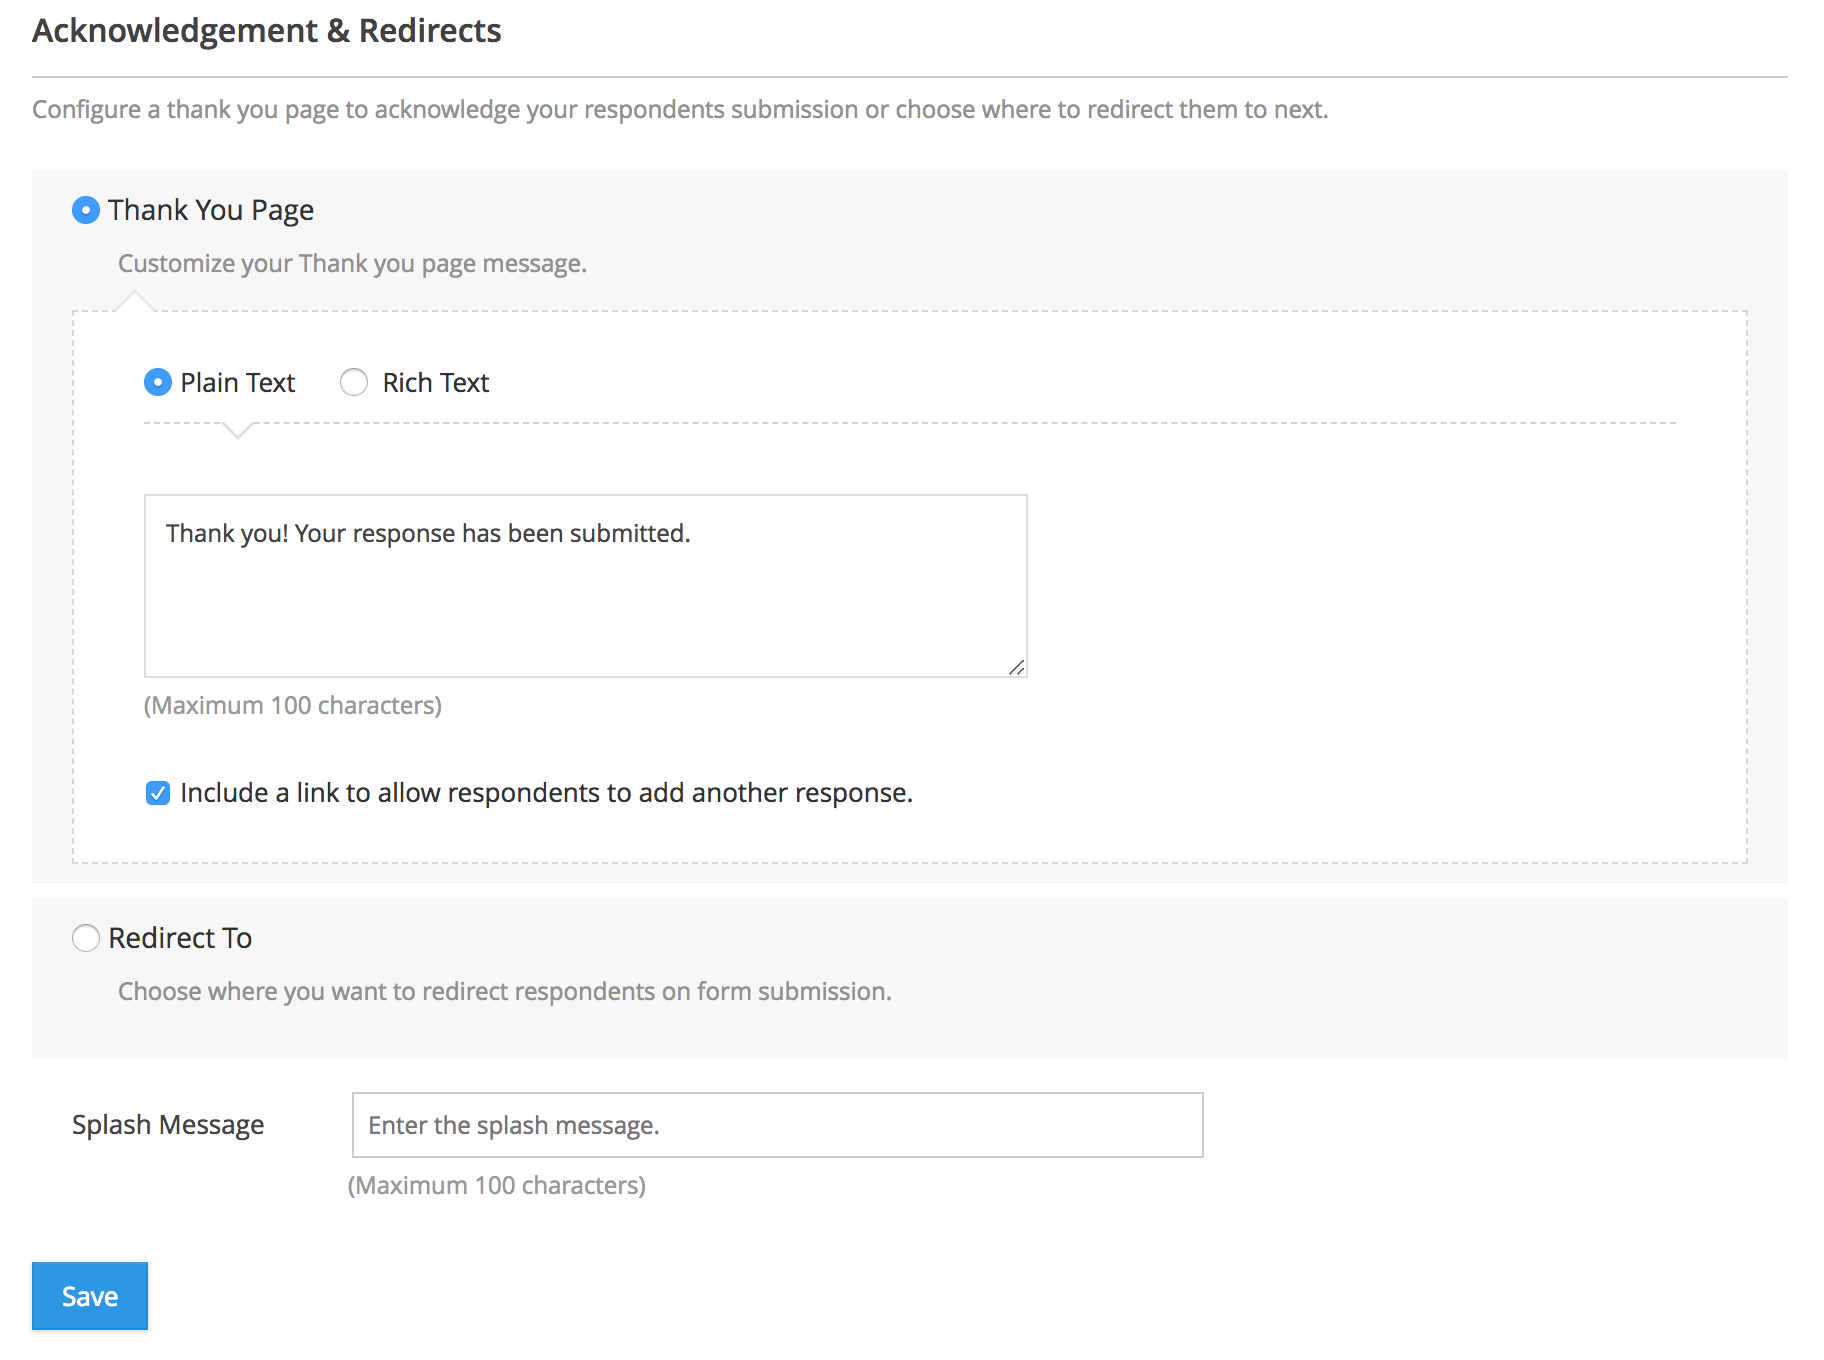 Acknowledgement & Redirects   Zoho Forms - User Guide